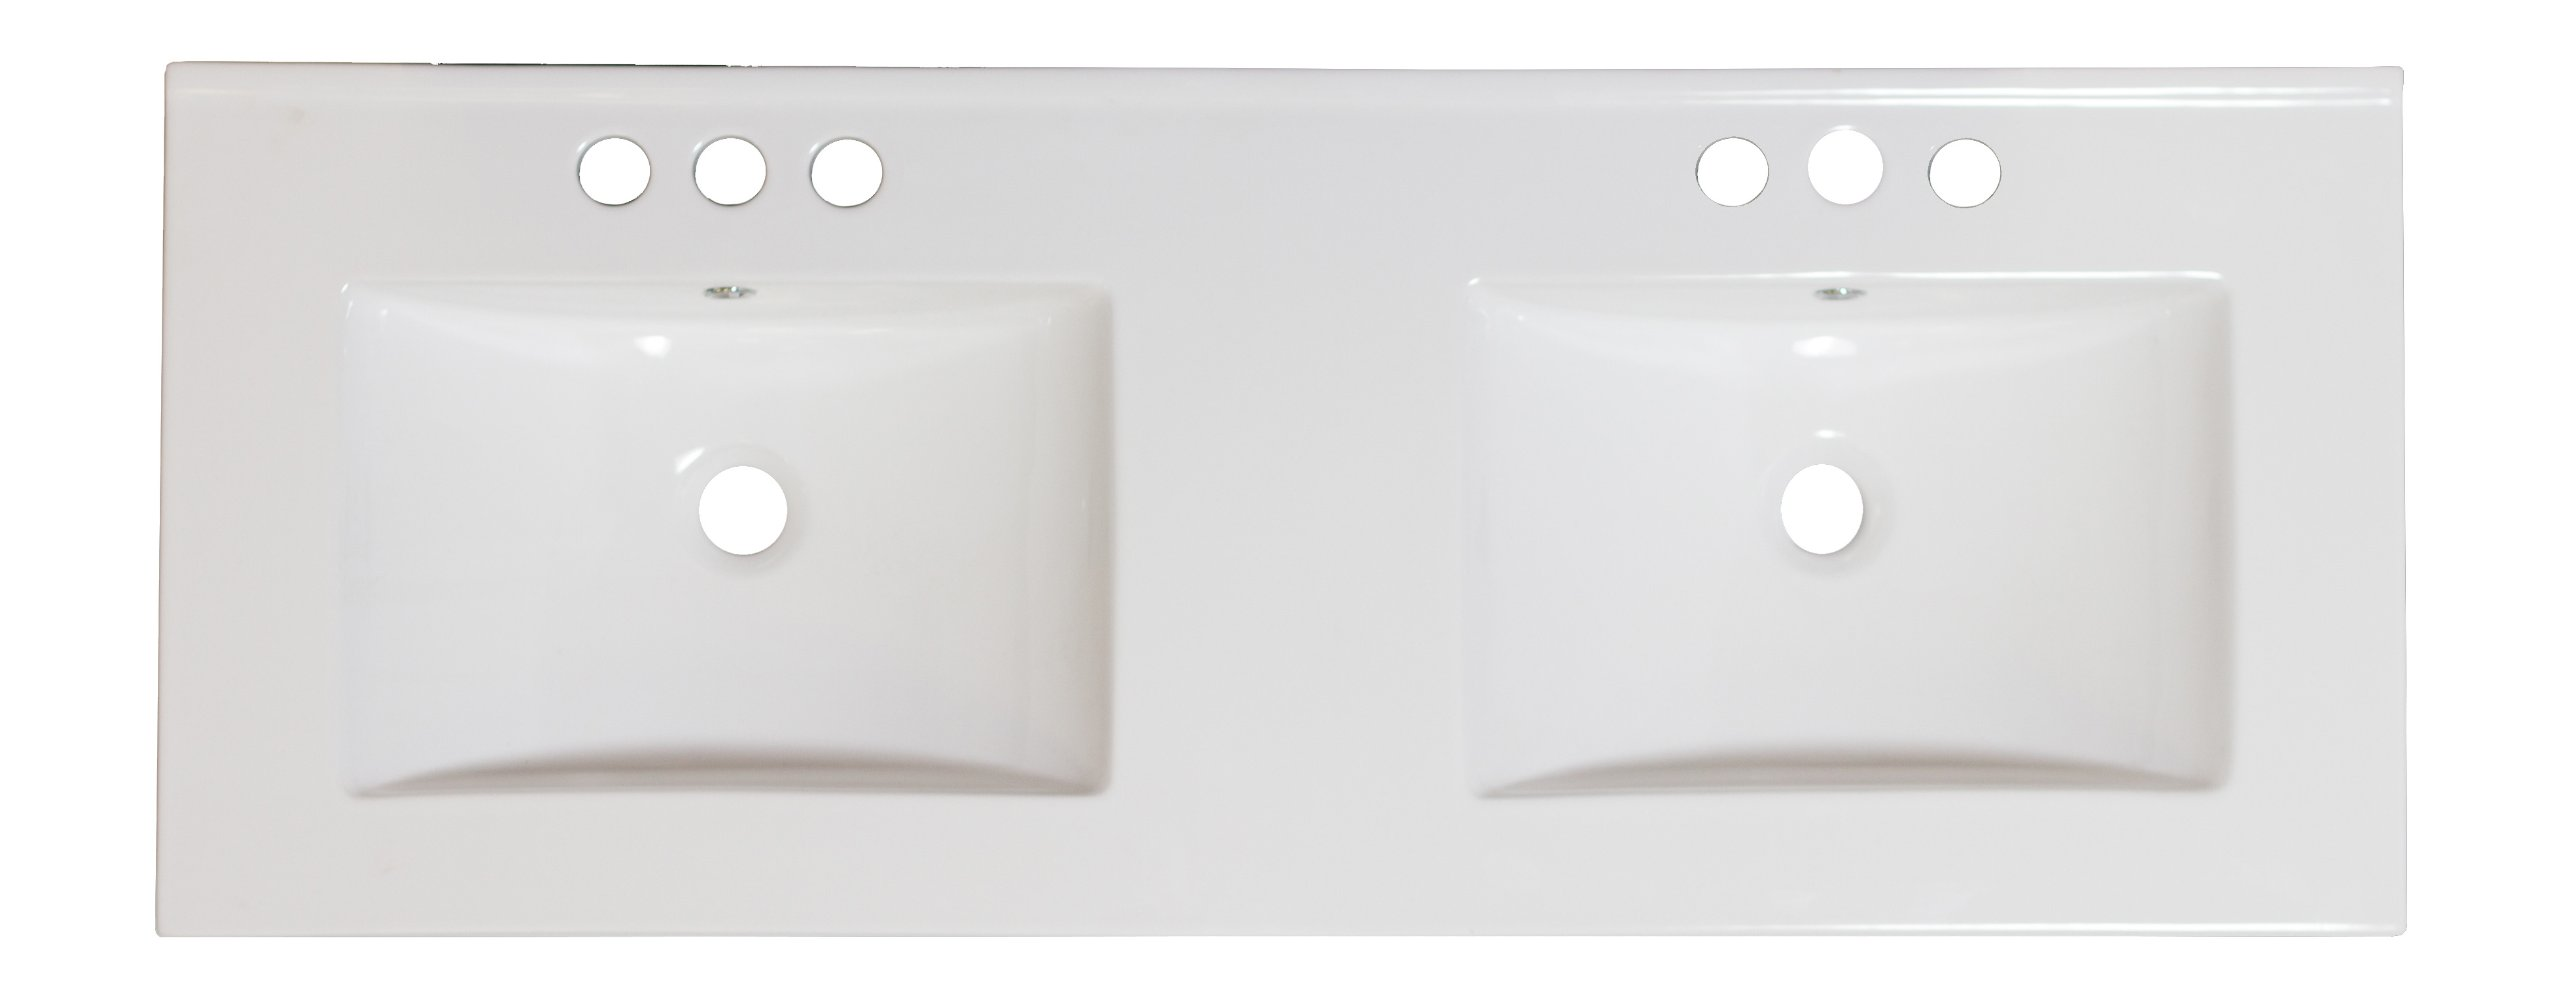 American Imaginations Rectangle Shape Transitional Ceramic Top, Comes with an Enamel Glaze Finish in White Color and Designed for an 8-In. O.C. Faucet by American Imaginations